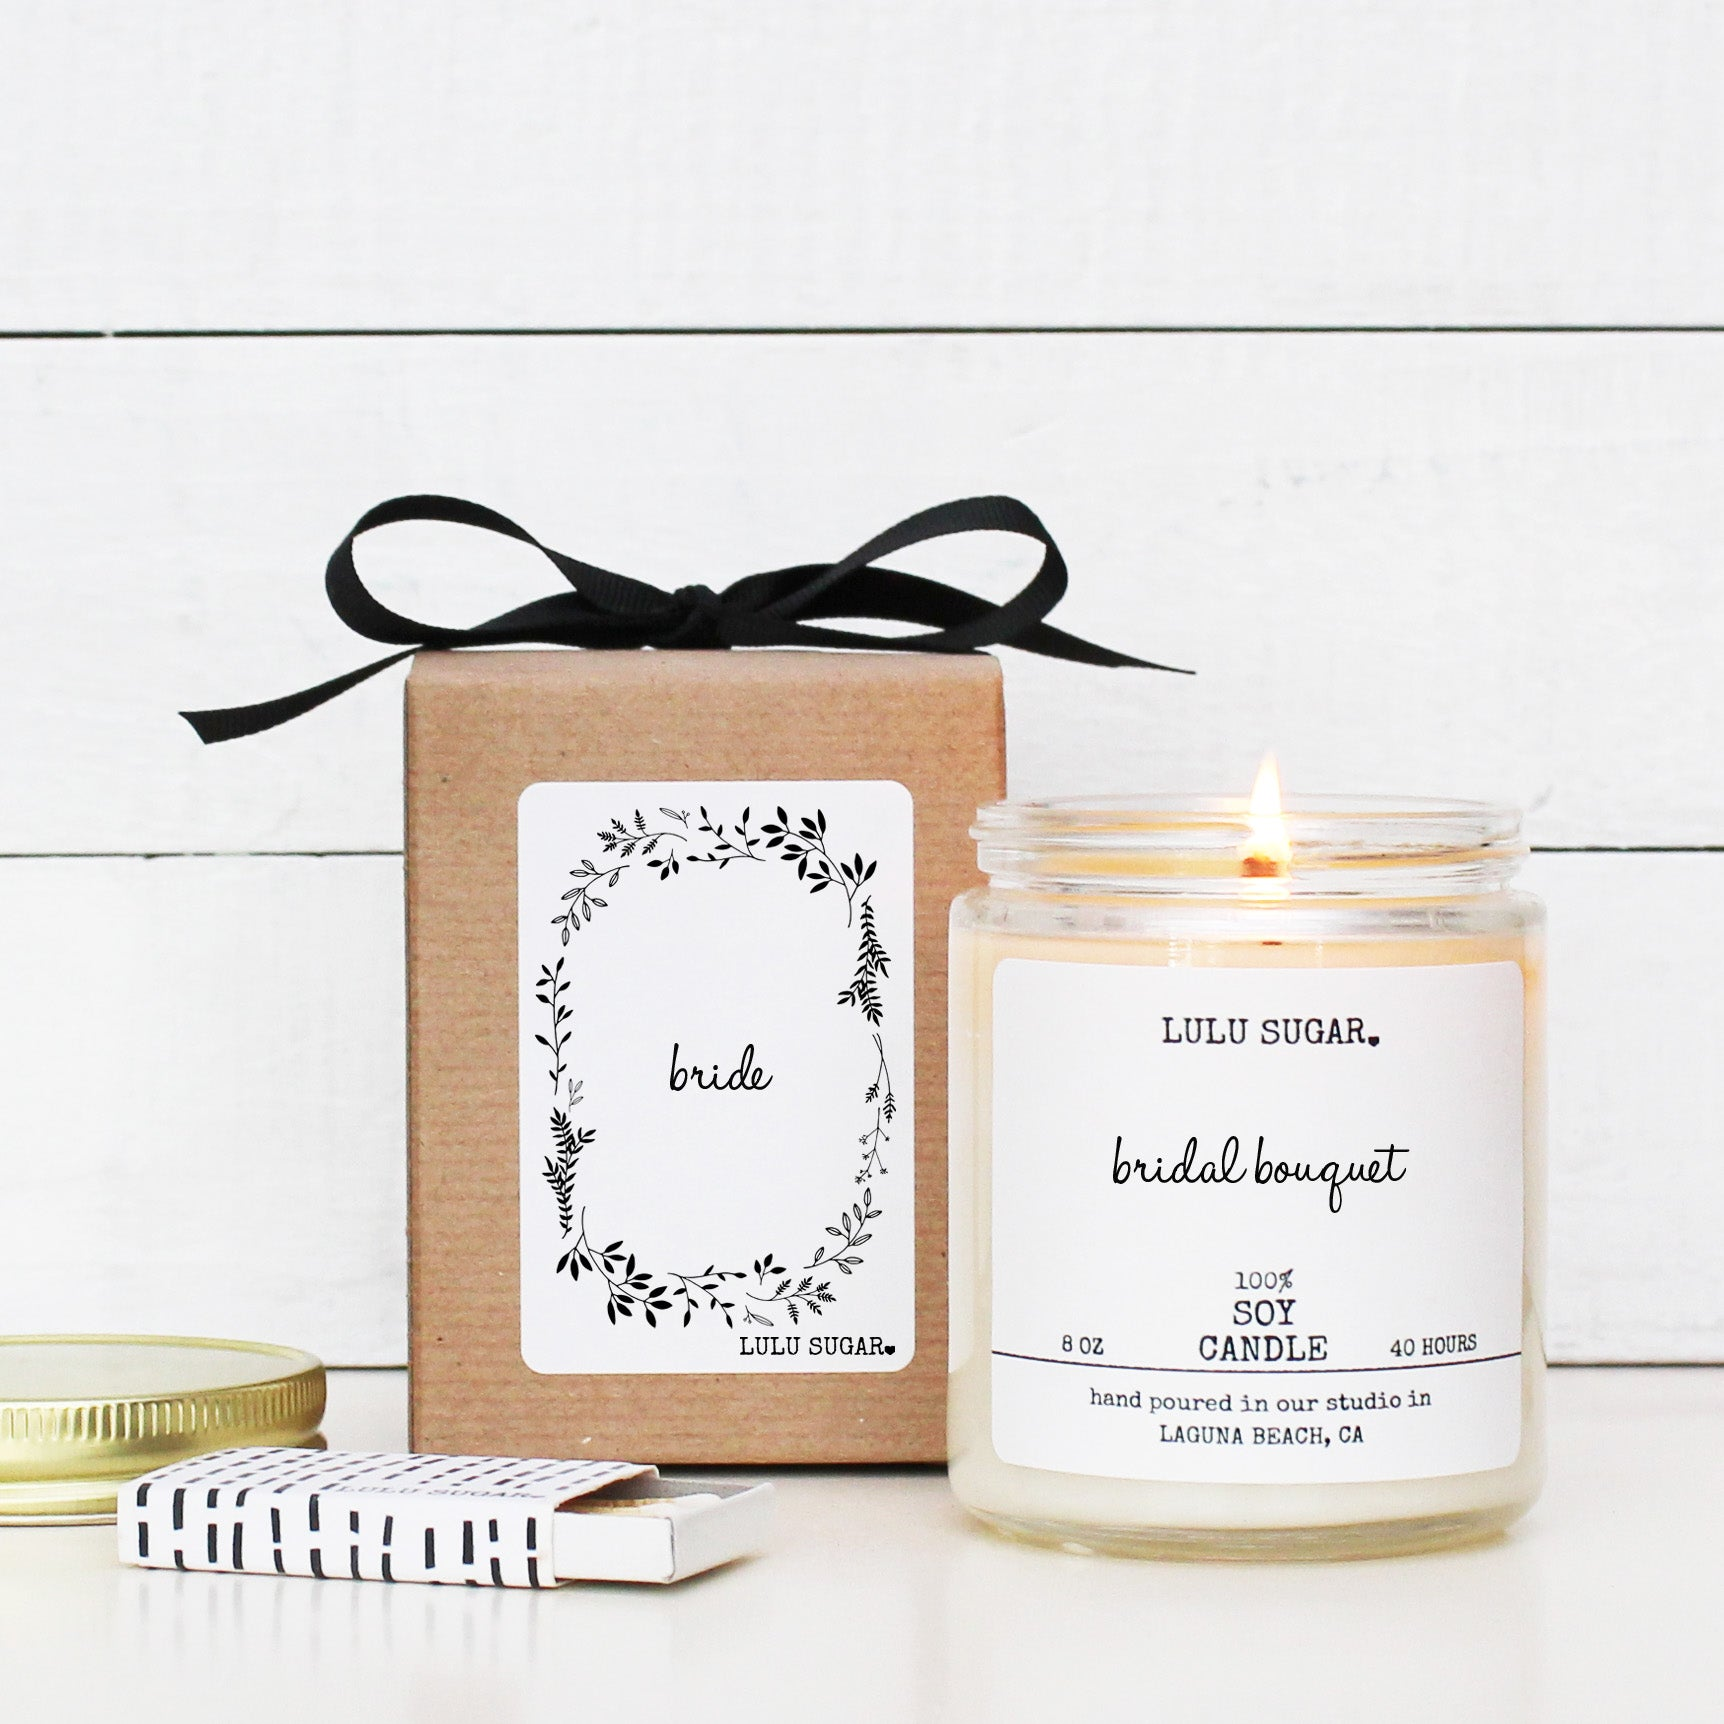 Bride Soy Candle Gift